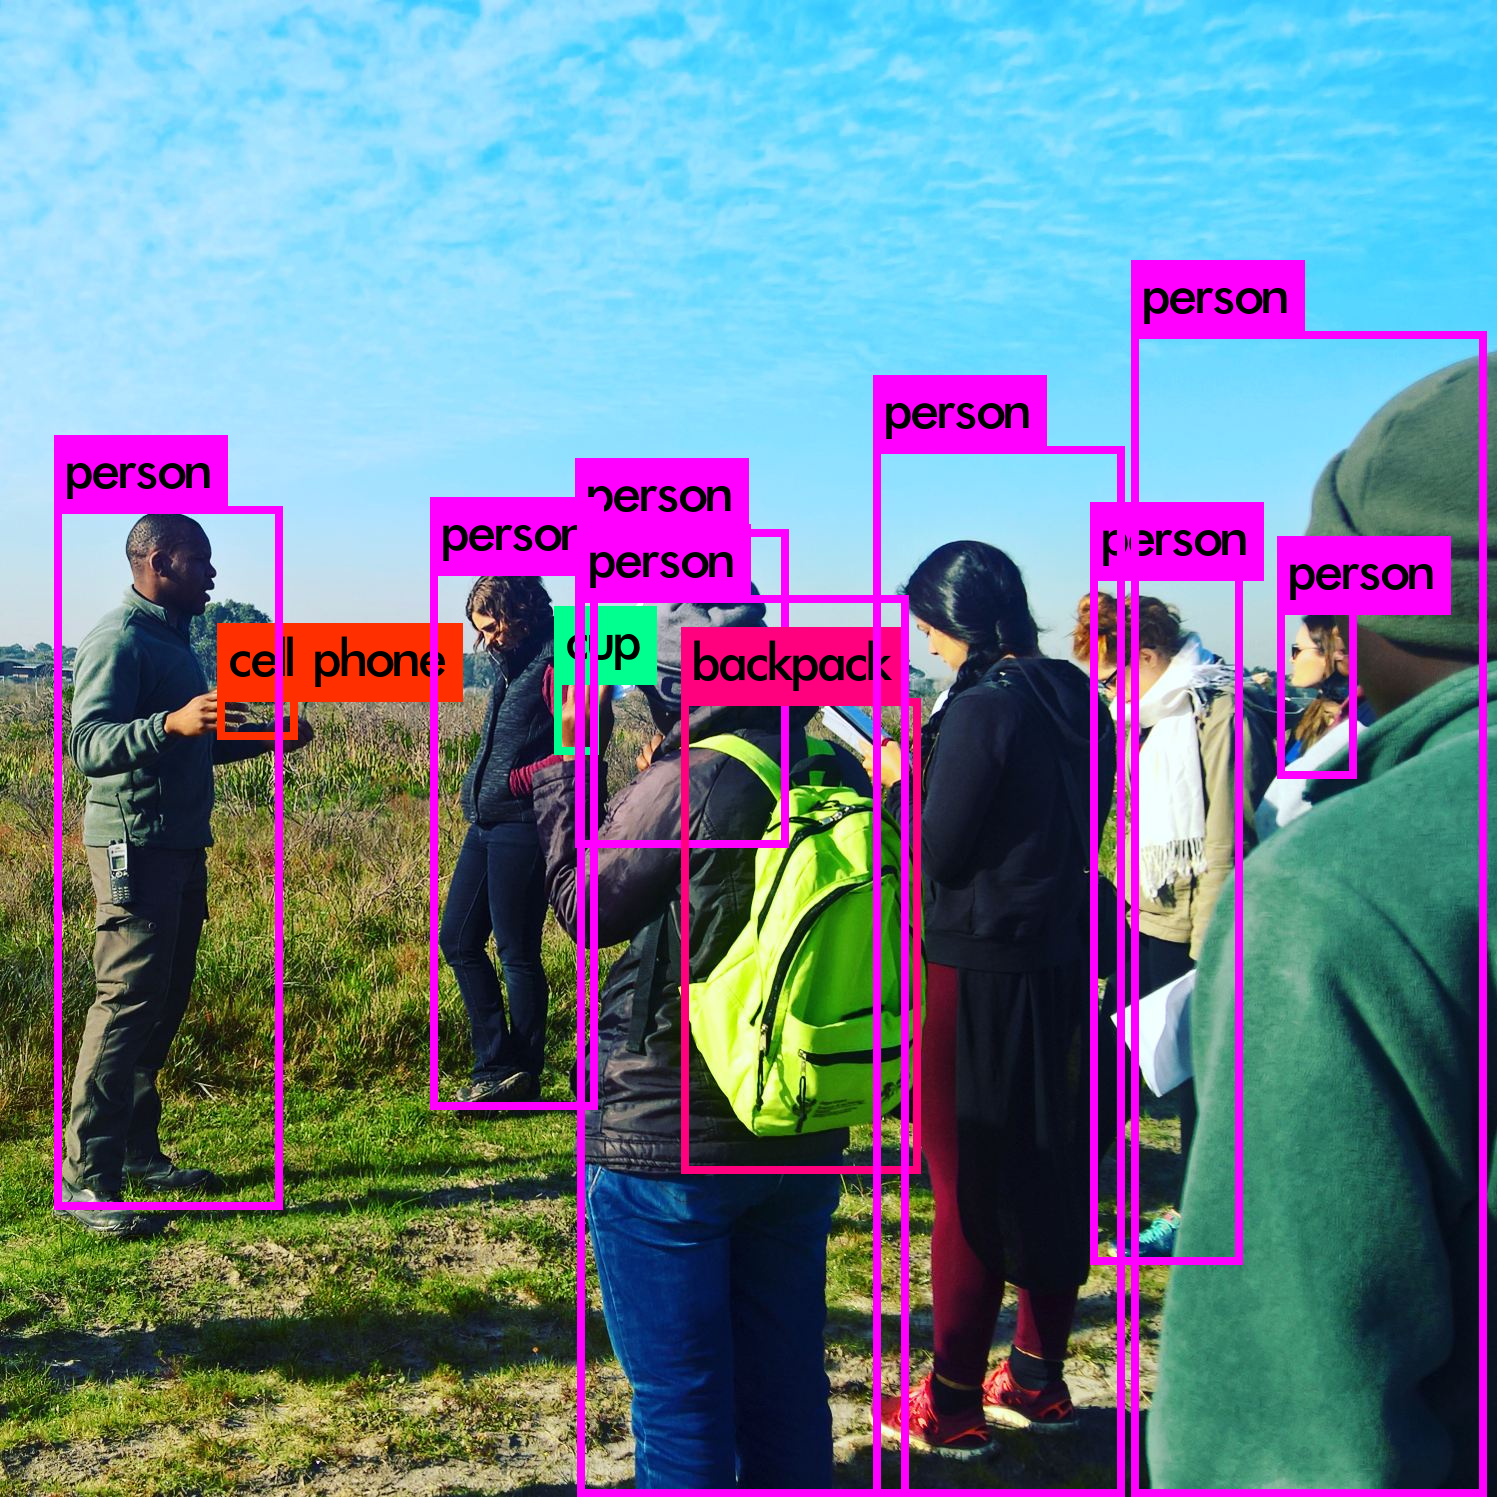 Real-Time Custom Object Detection using TensorFlow App